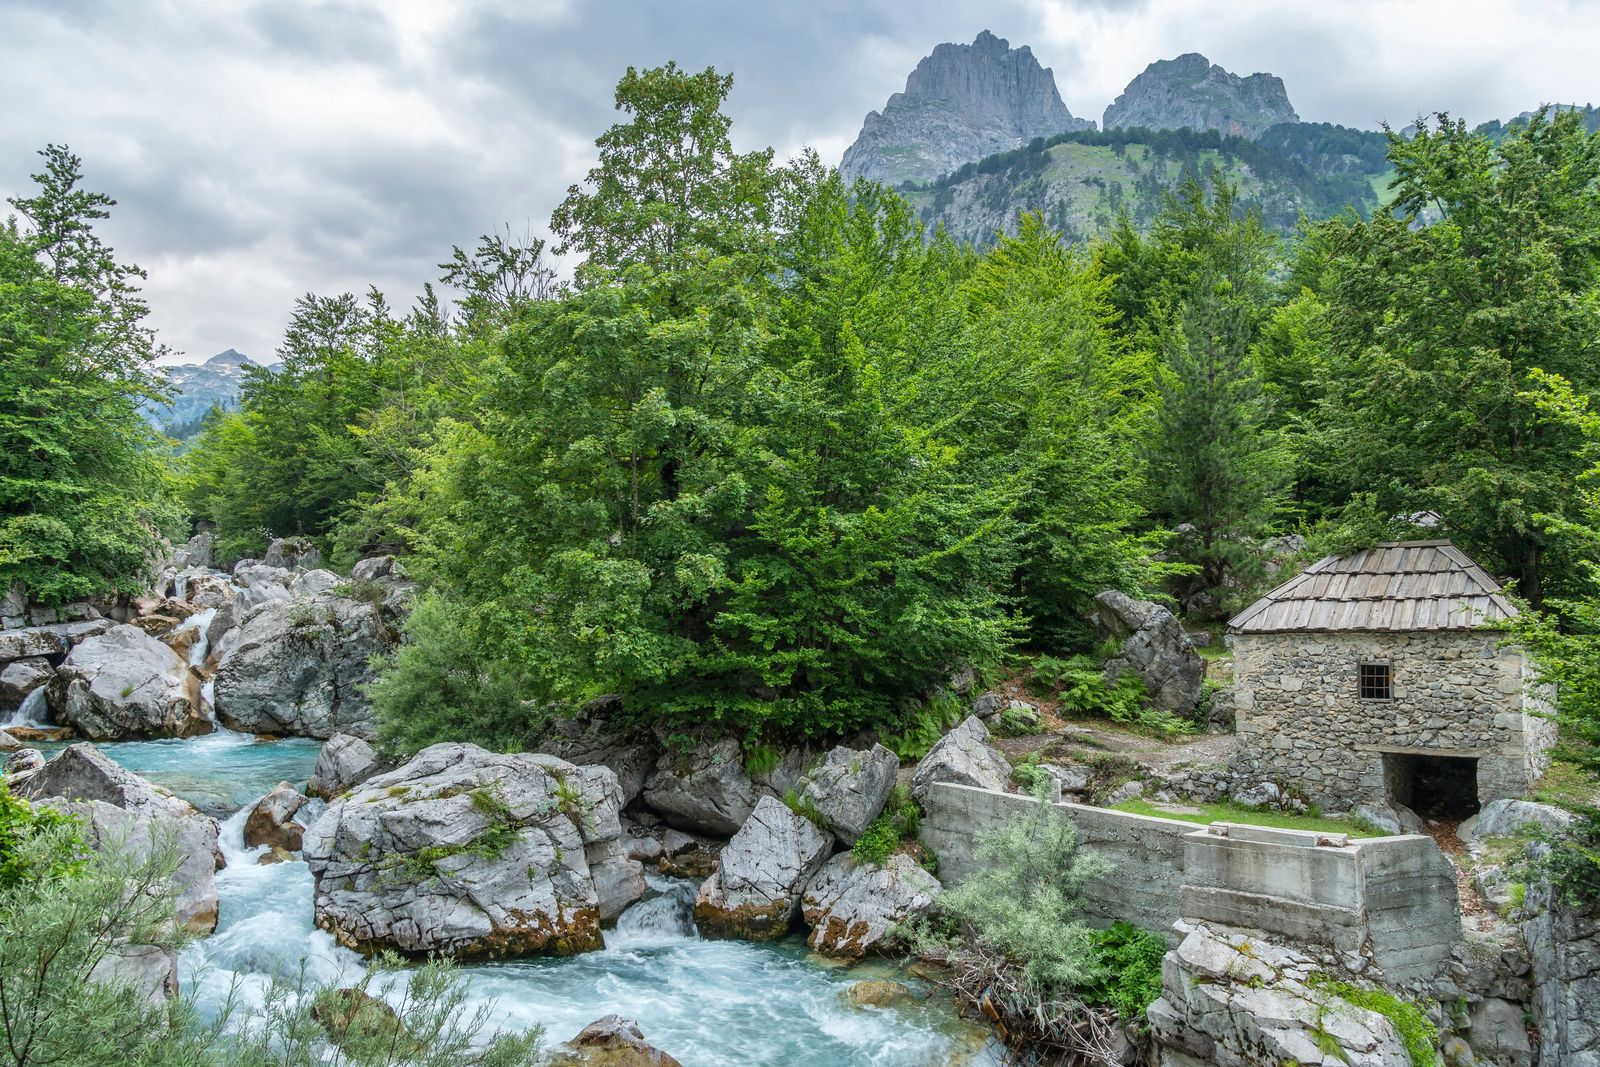 A water mill in the Valbona River Valley, Valbona National Park. This region of Albania is ...